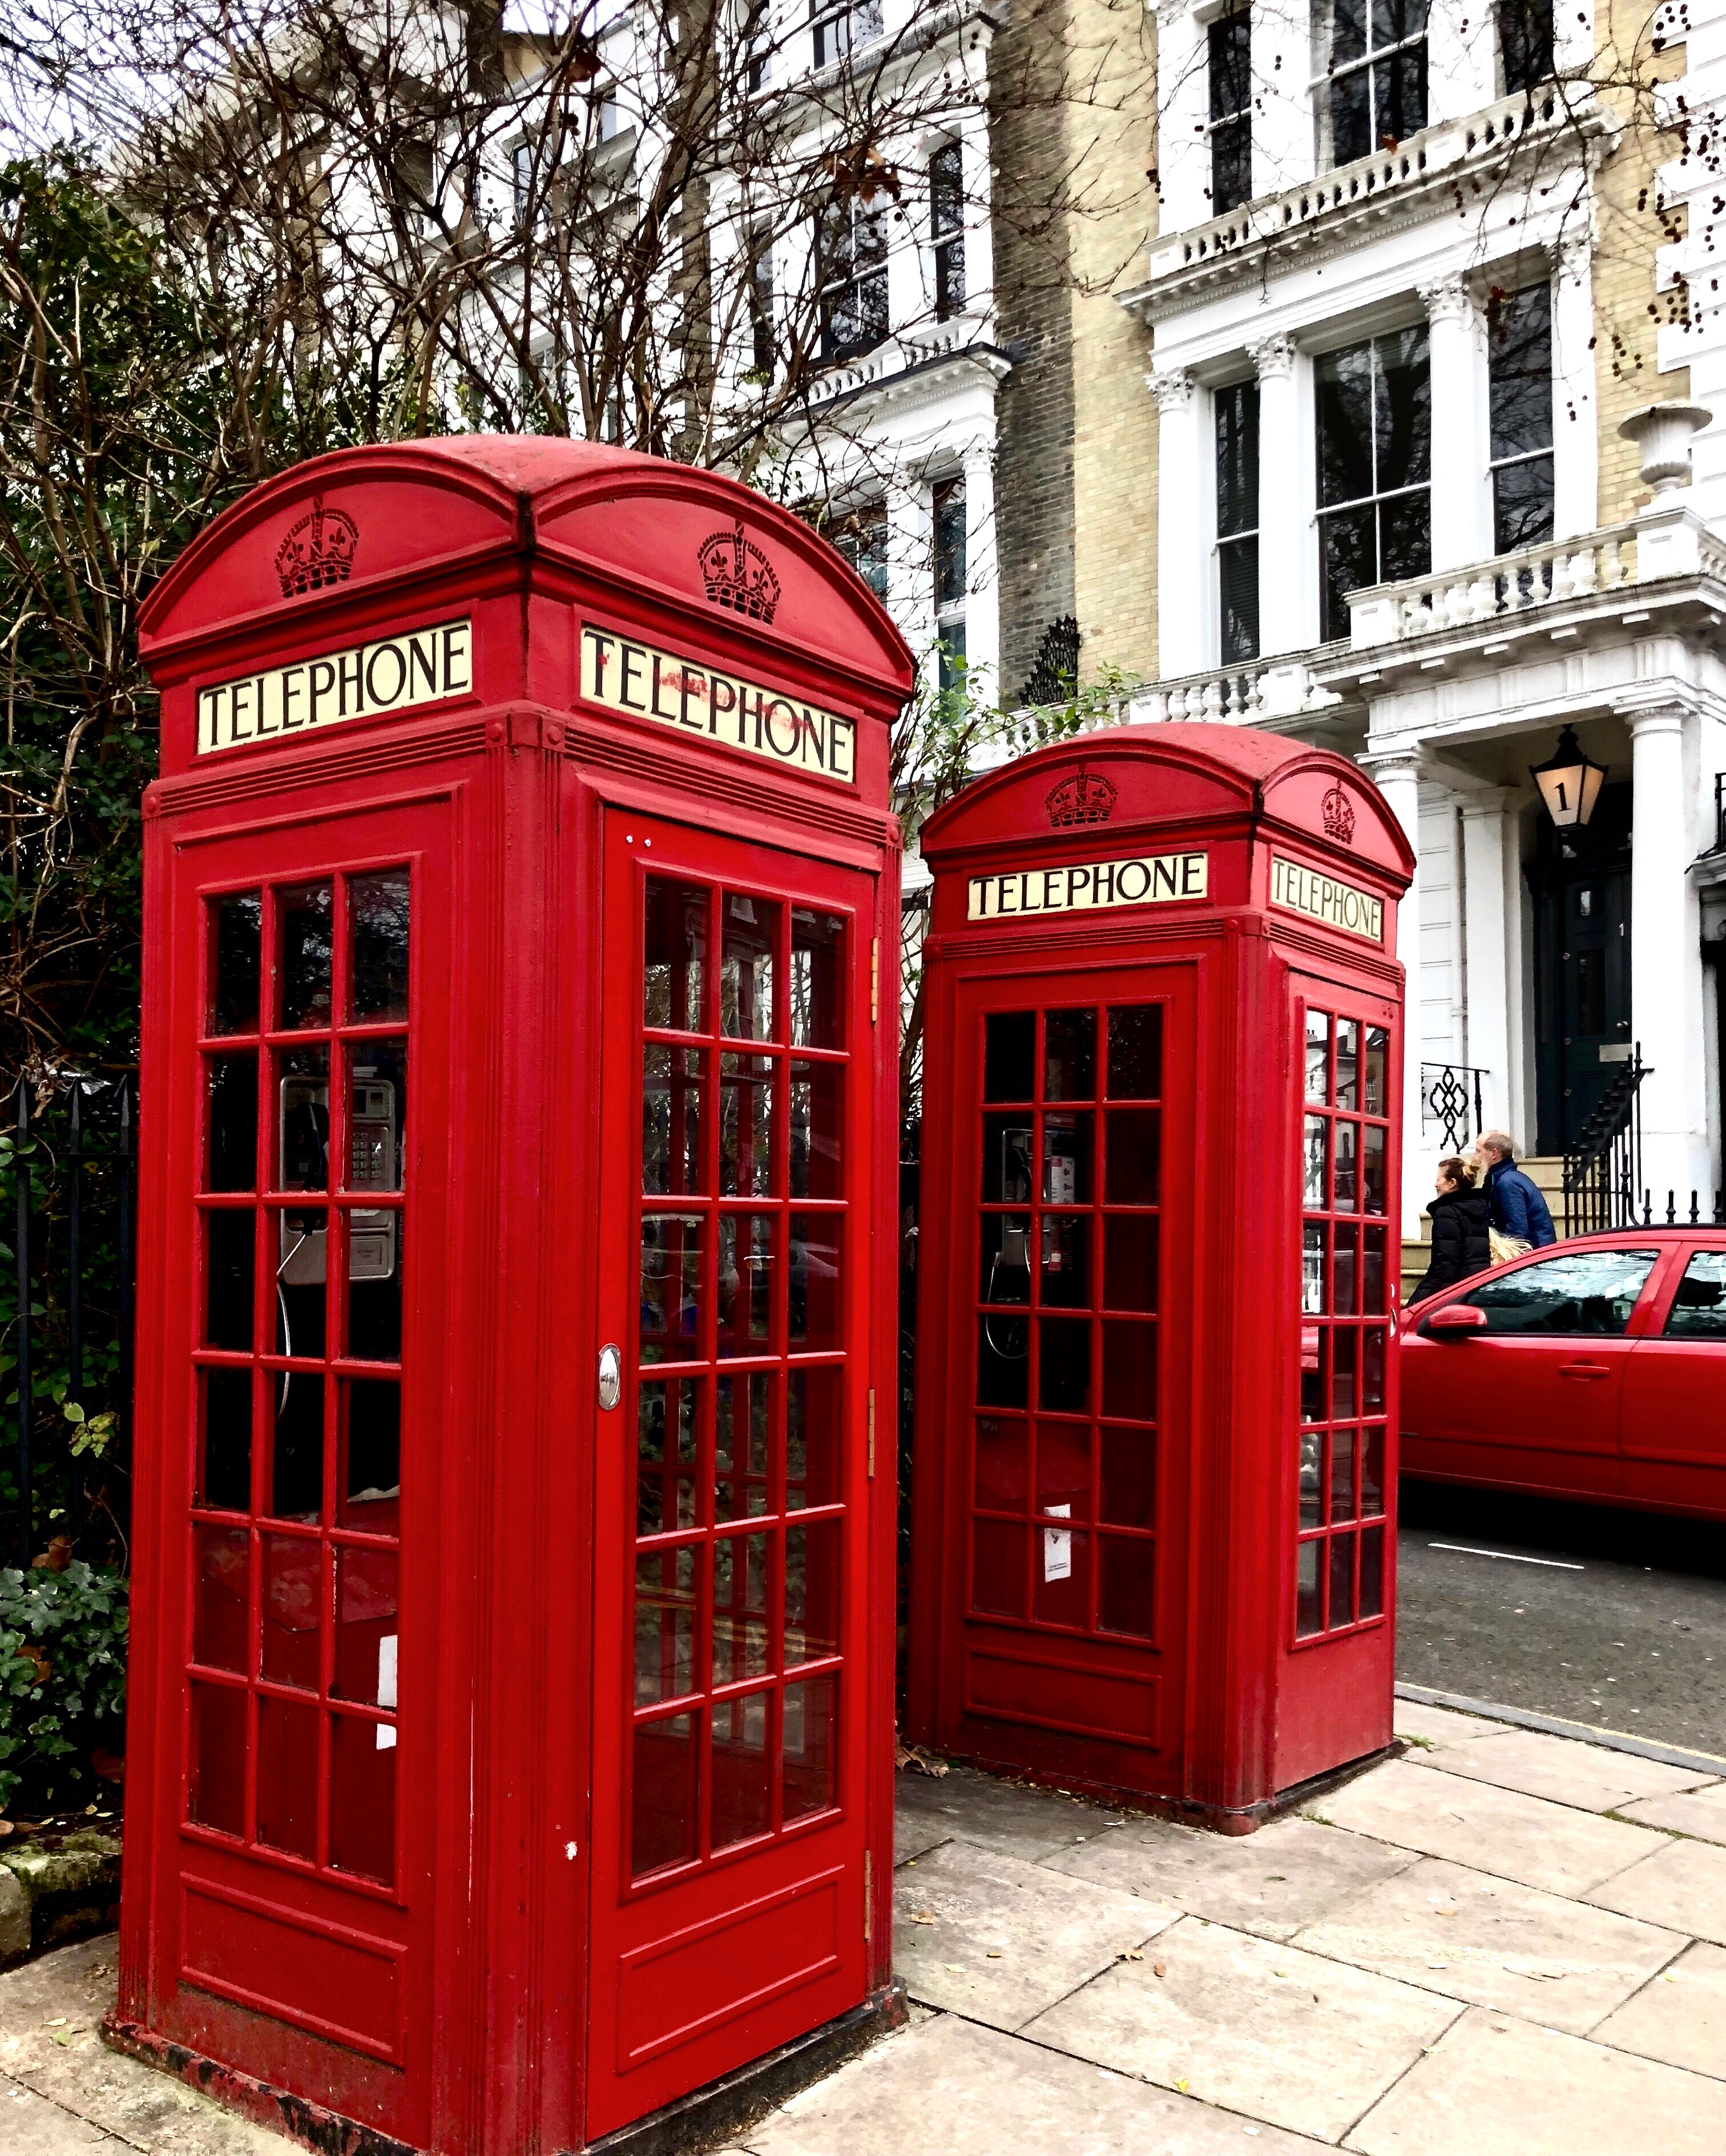 CAPAStudyAbroad_London_Spring2018_From Kelly Allen - The Iconic Red Telephone Booth